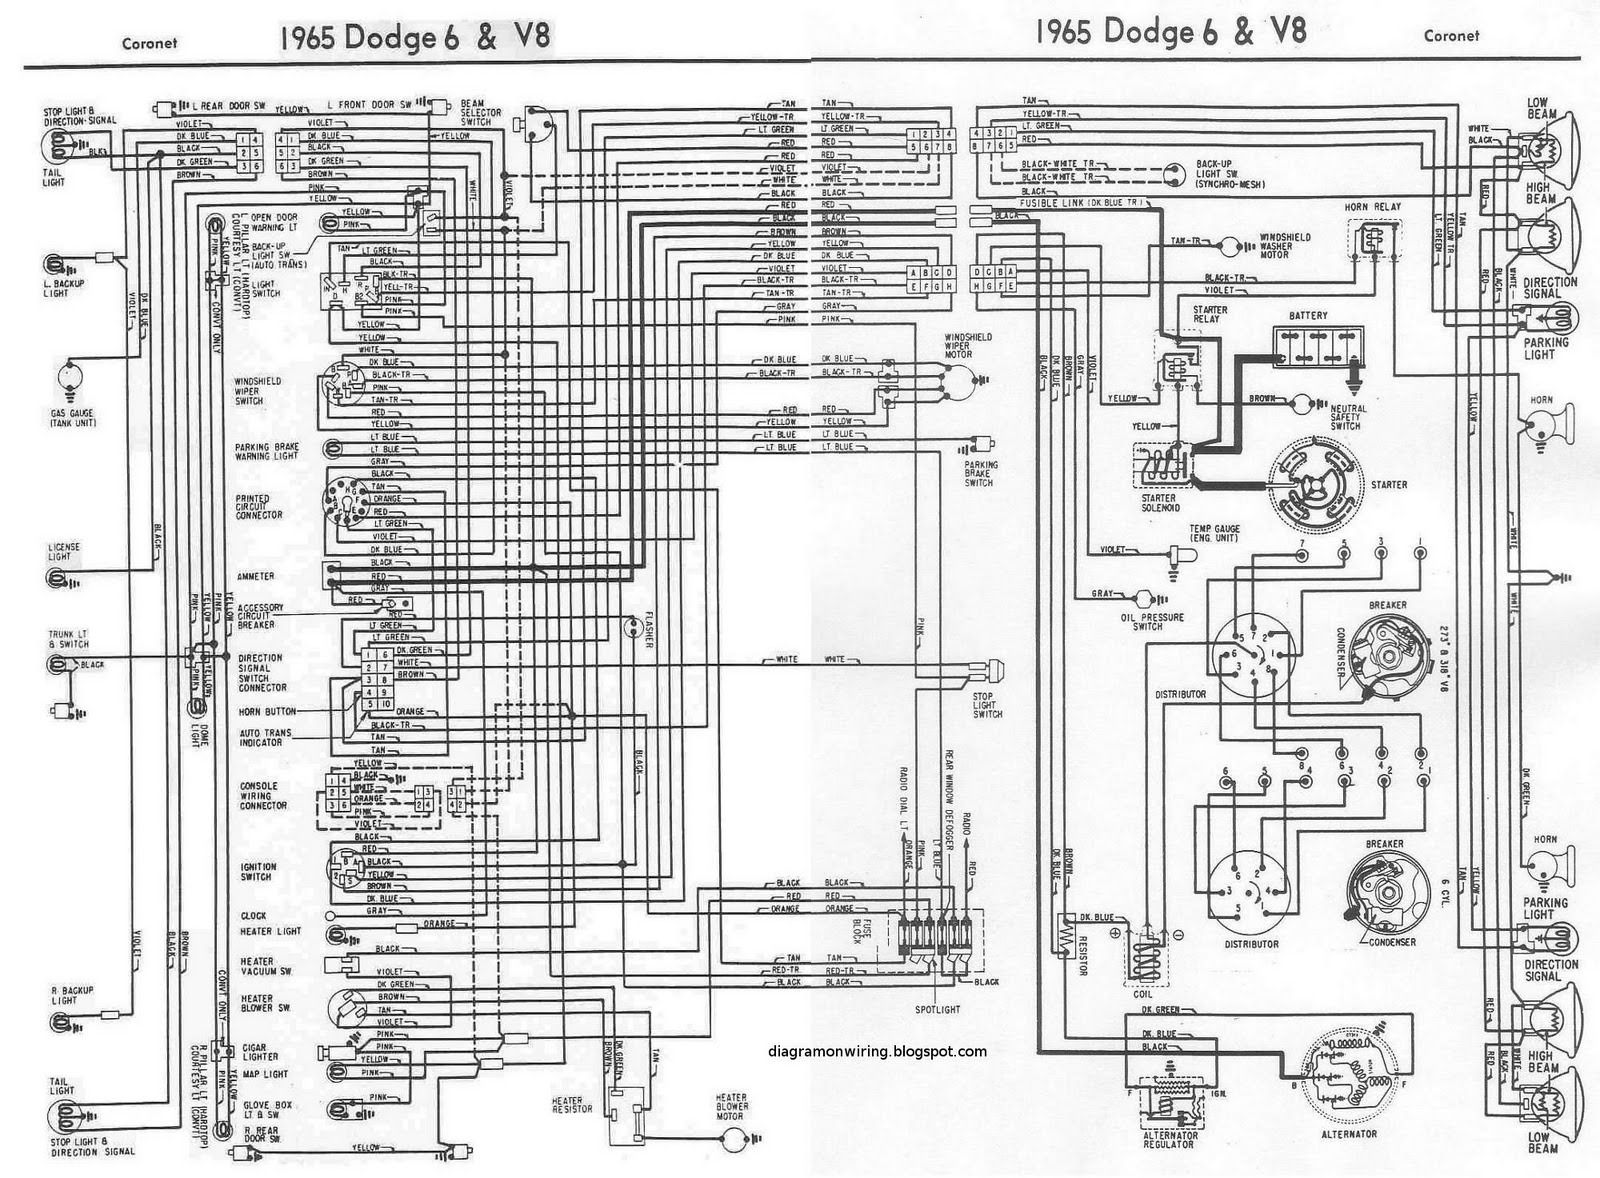 1967 dodge dart wiring diagram wiring diagrams 440 Engine Mechanical Diagram 1967 dodge dart wiring diagram ccfd14ni bibliofem nl \\u20221971 dodge dart wiring diagram wiring diagram